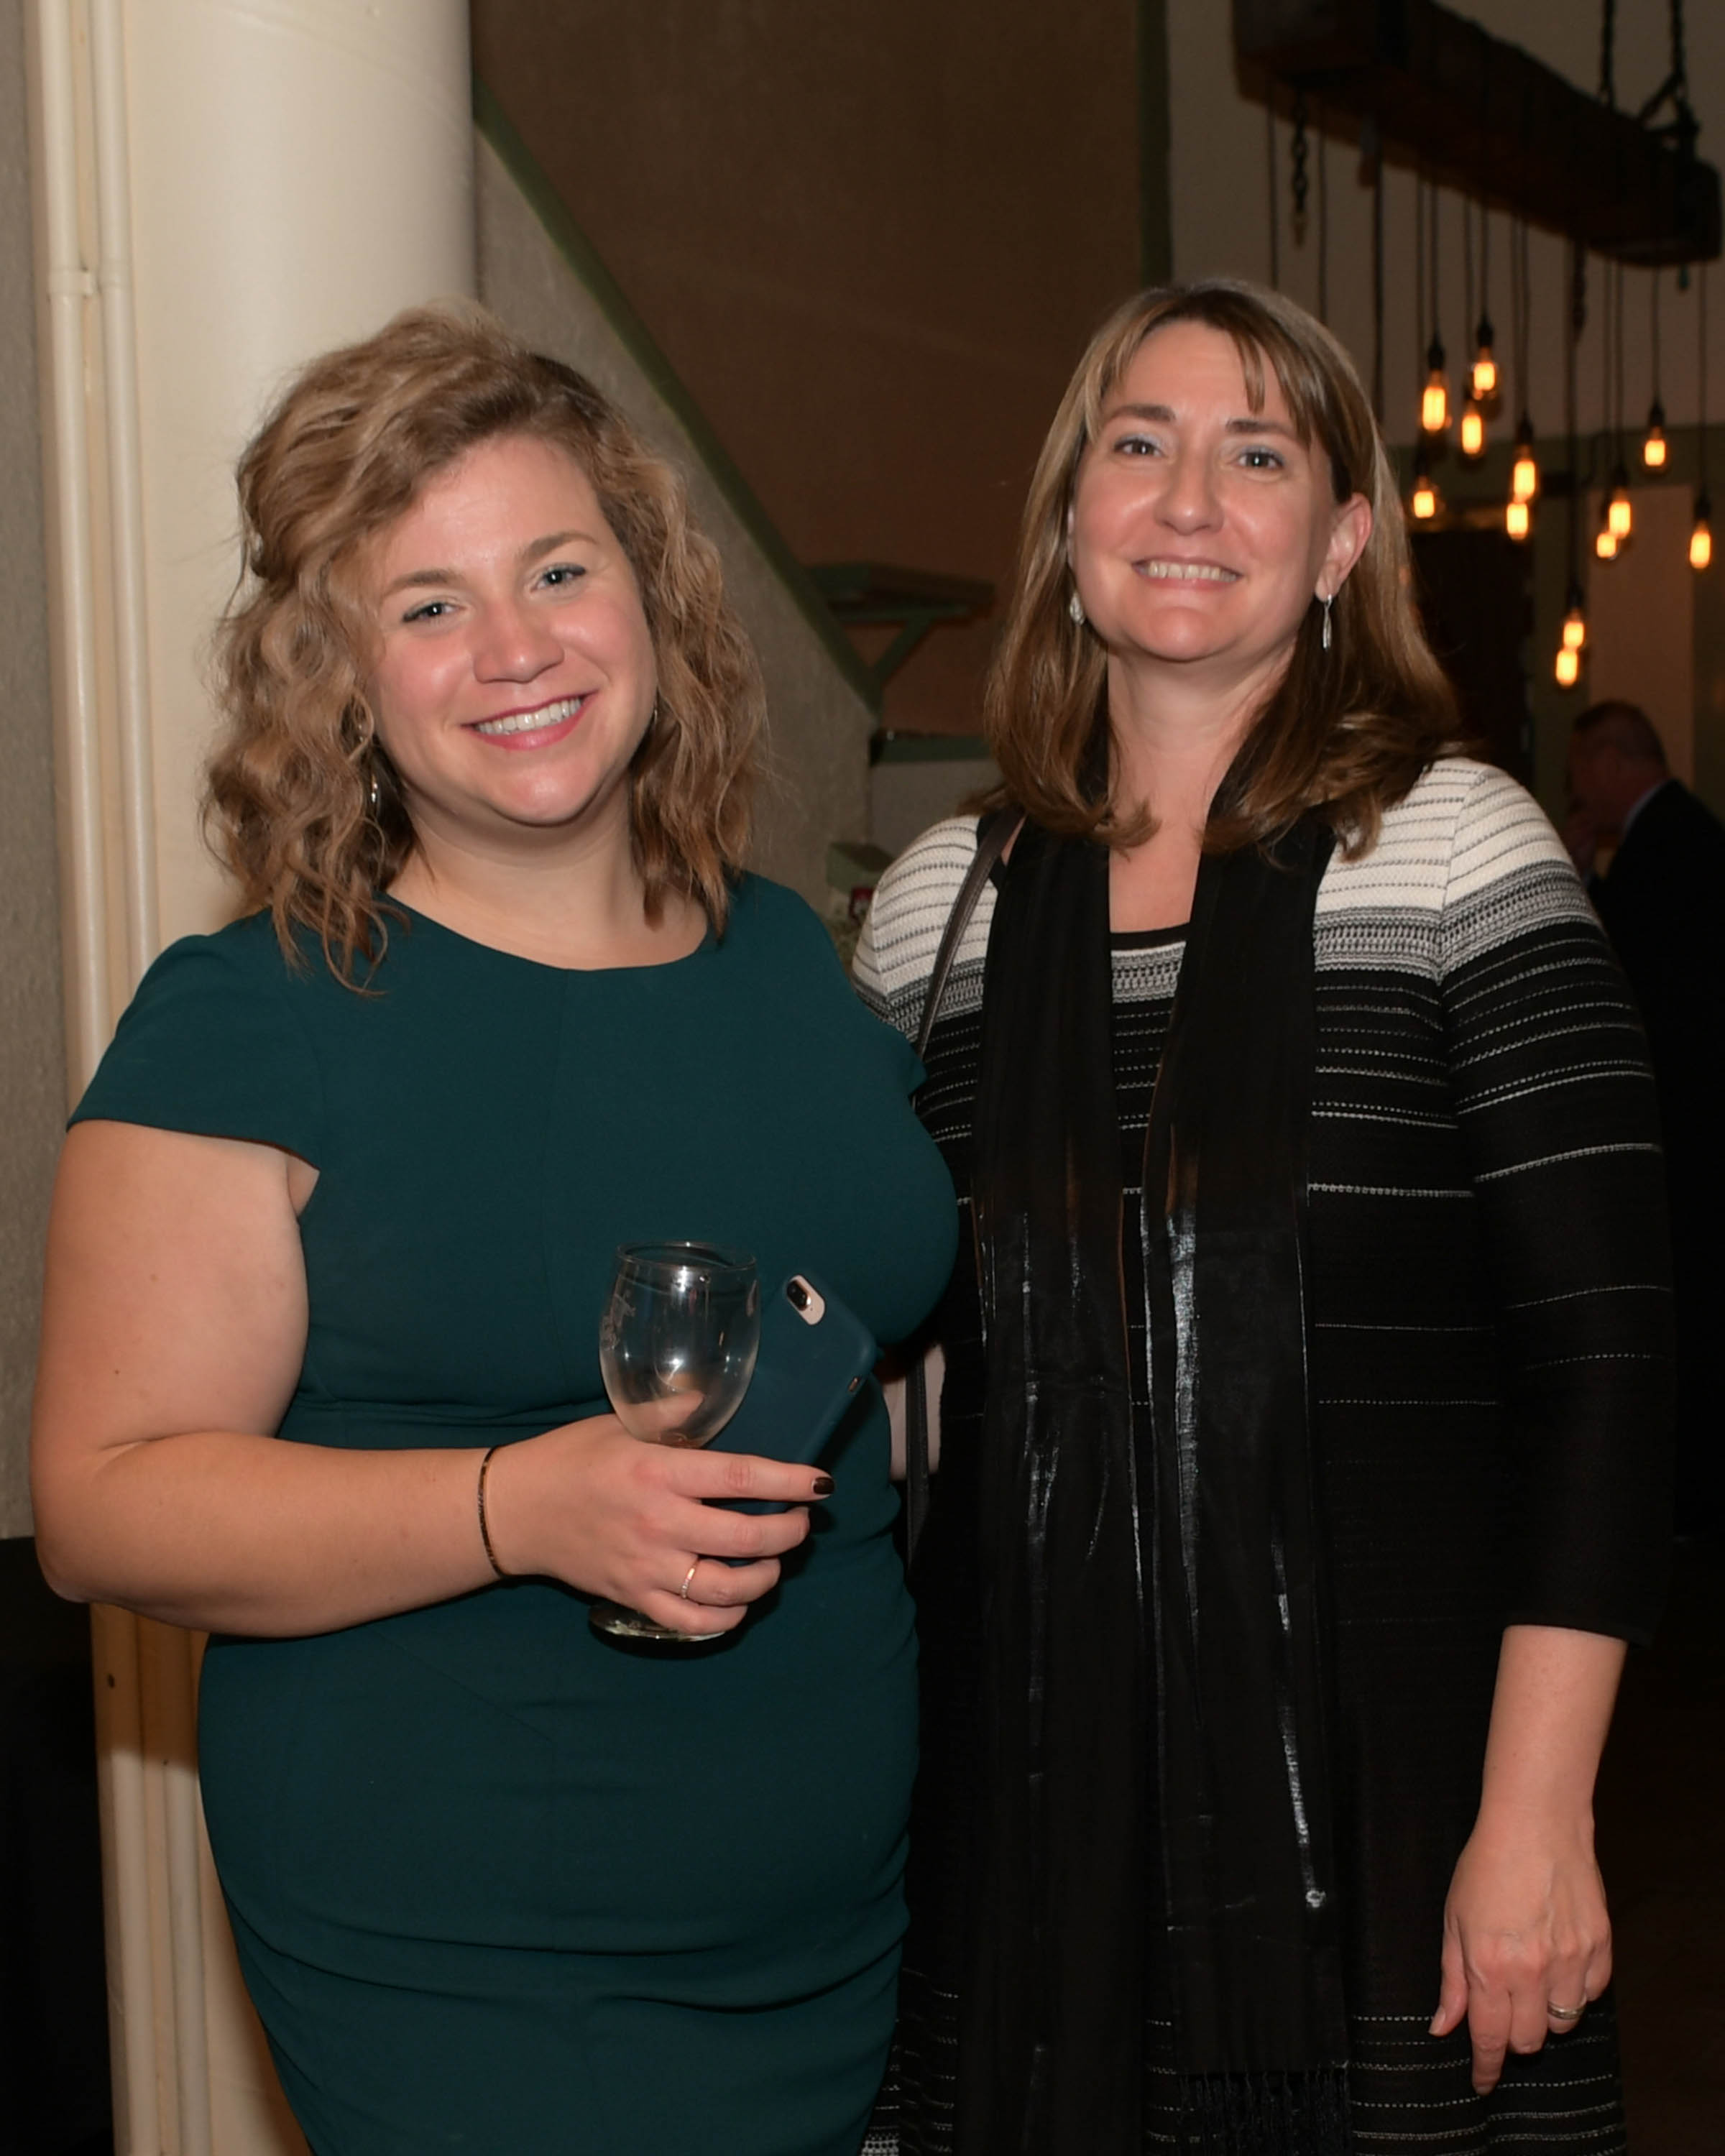 Vin Le Soir to benefit AIM Services, Inc. two women